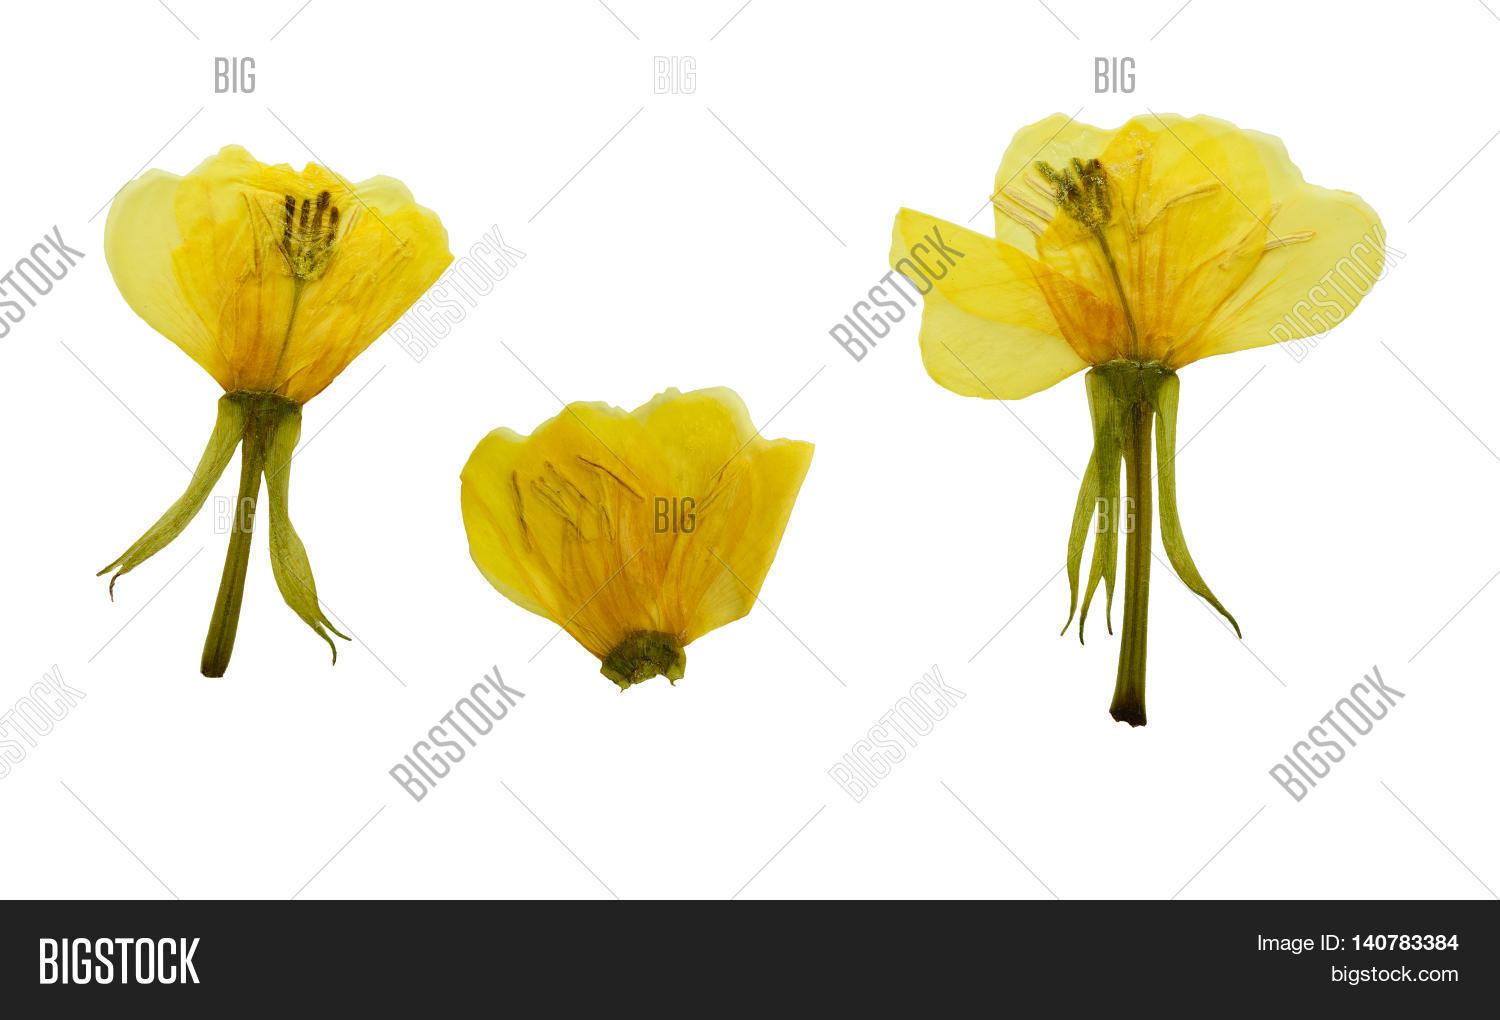 How to scrapbook dried flowers - Pressed And Dried Flowers Evening Primrose Oenothera Biennis Isolated On White Background